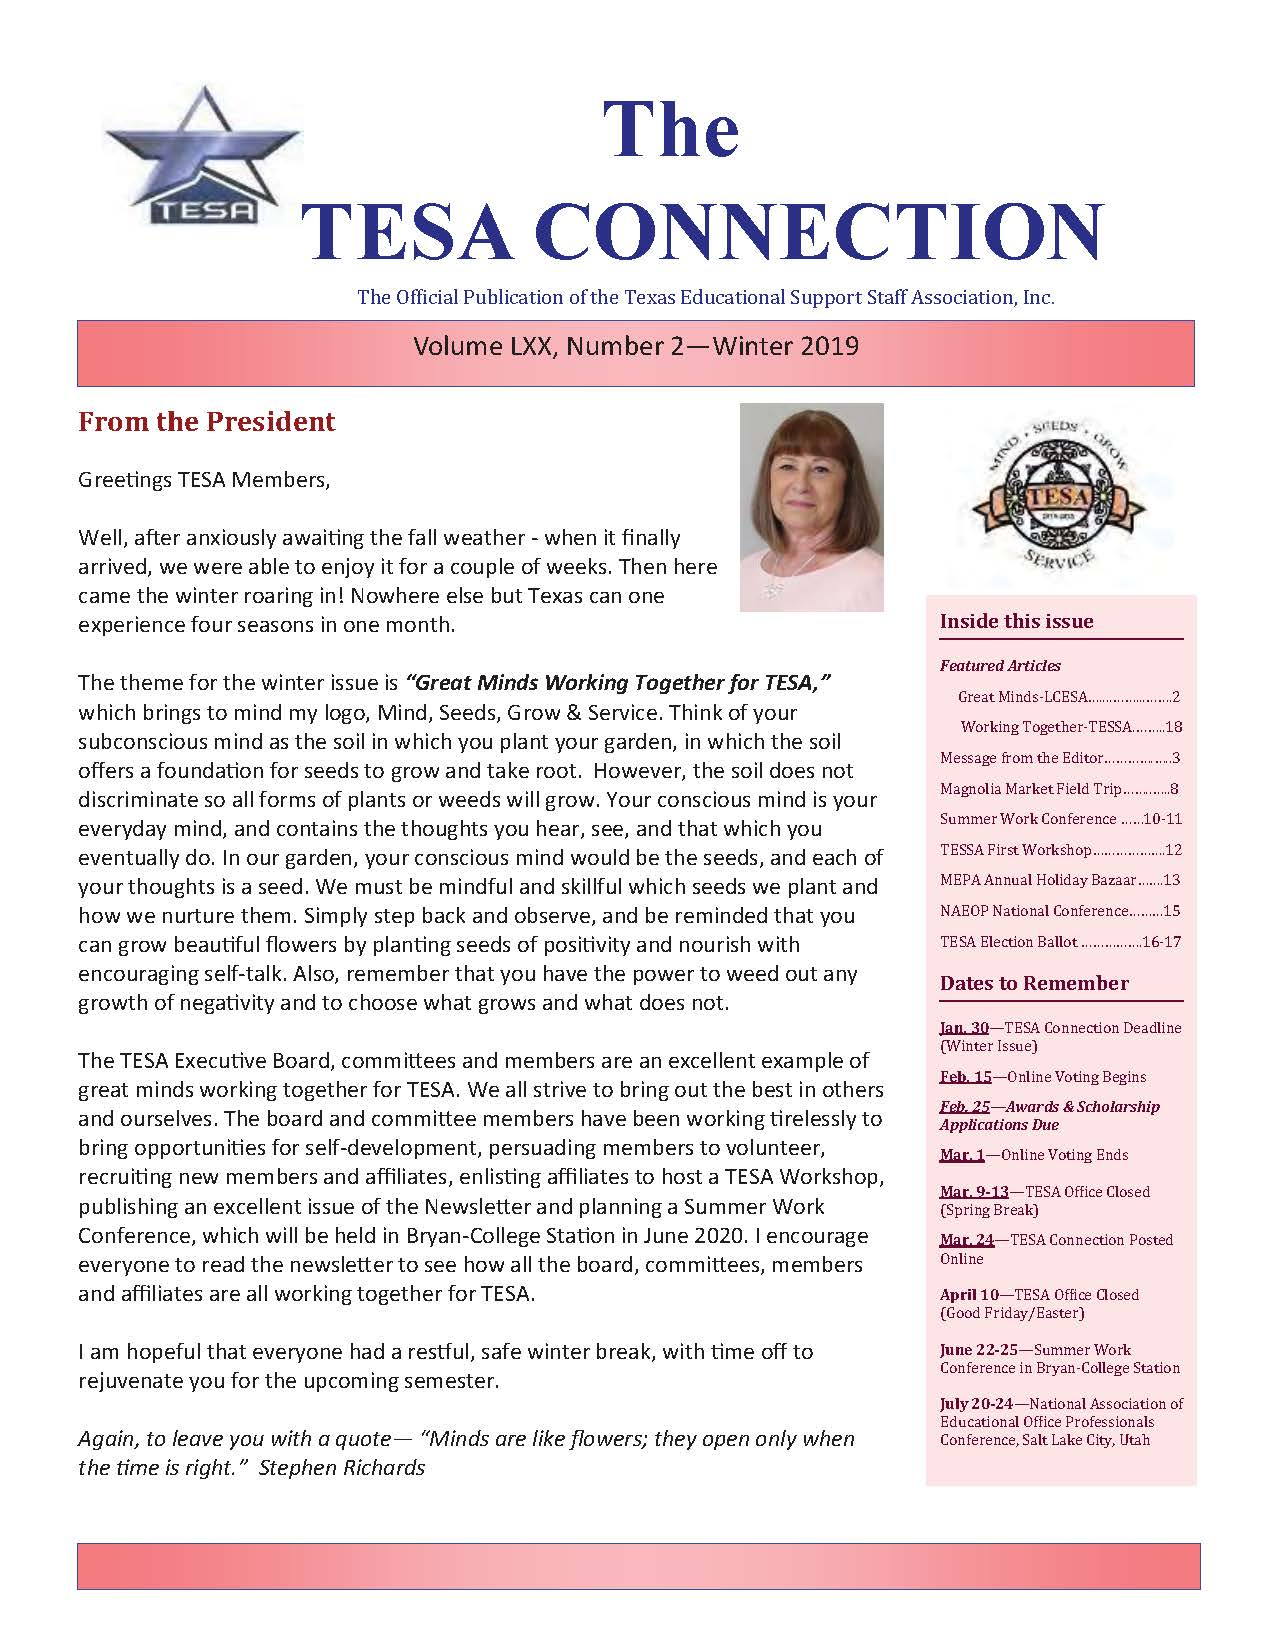 TESA Connection Winter 2019